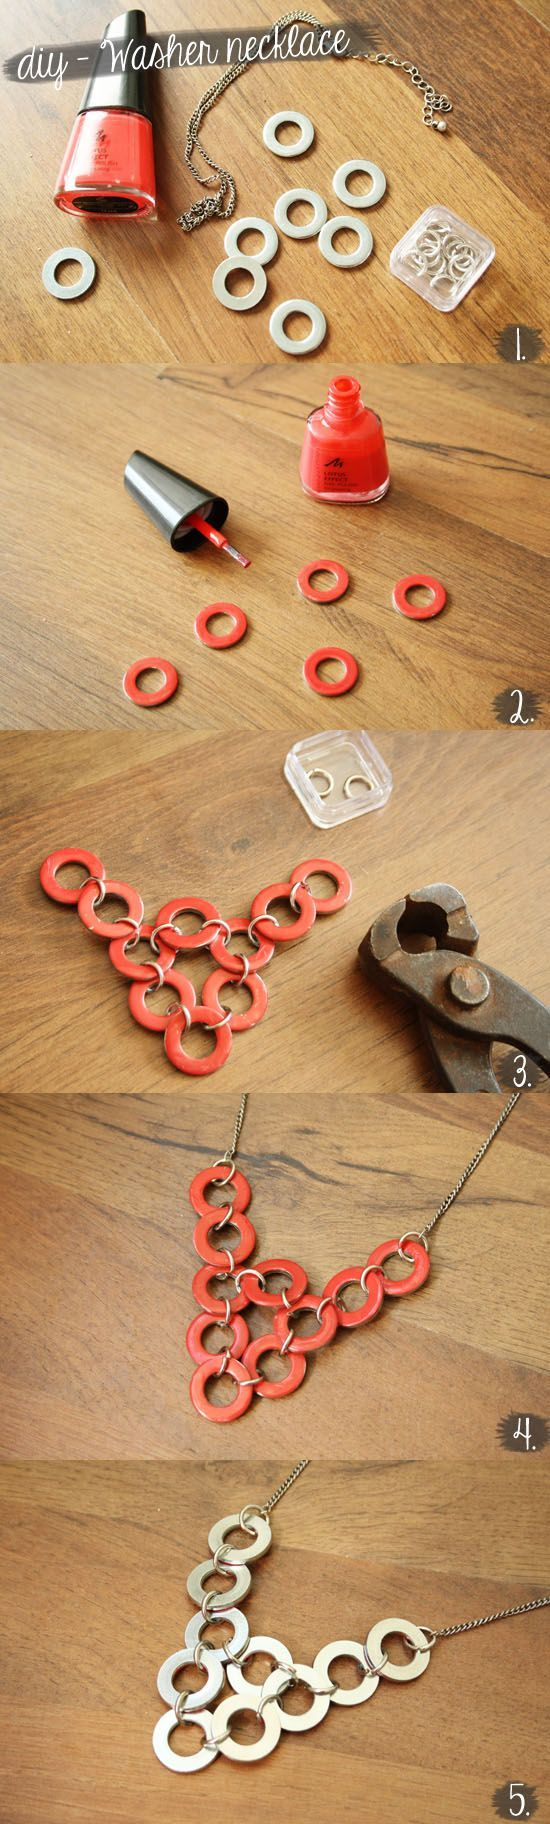 Washer necklace... yes, washers!: